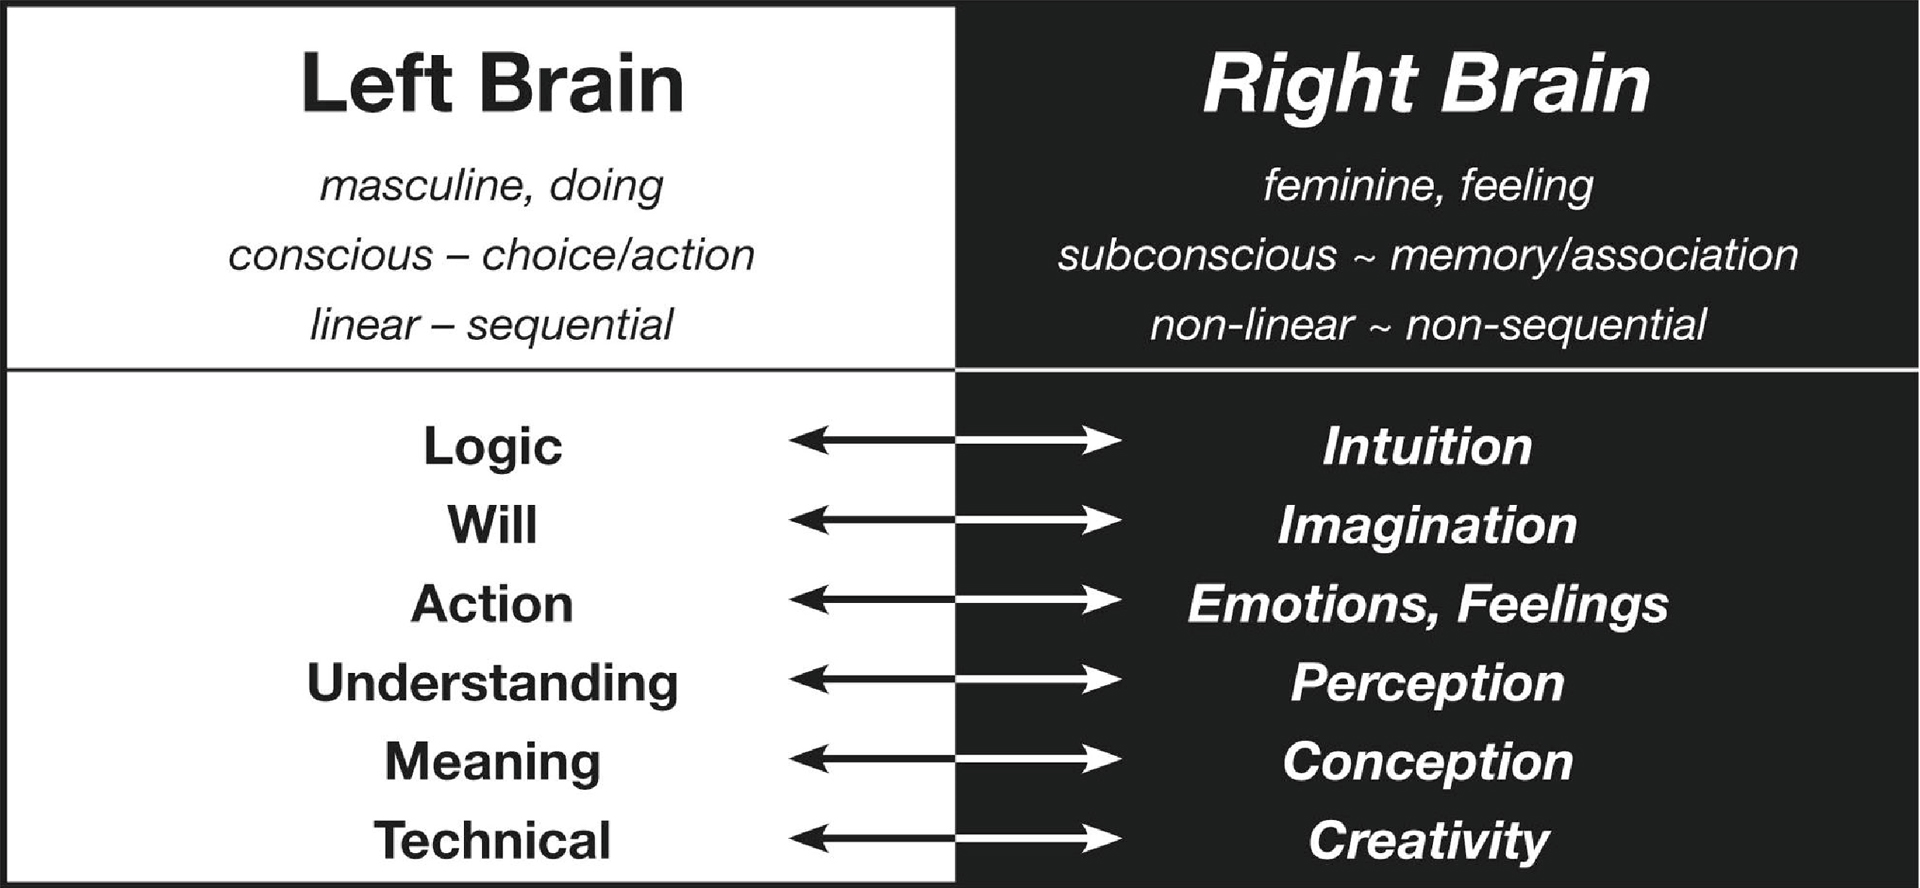 right brain strengths and weaknesses